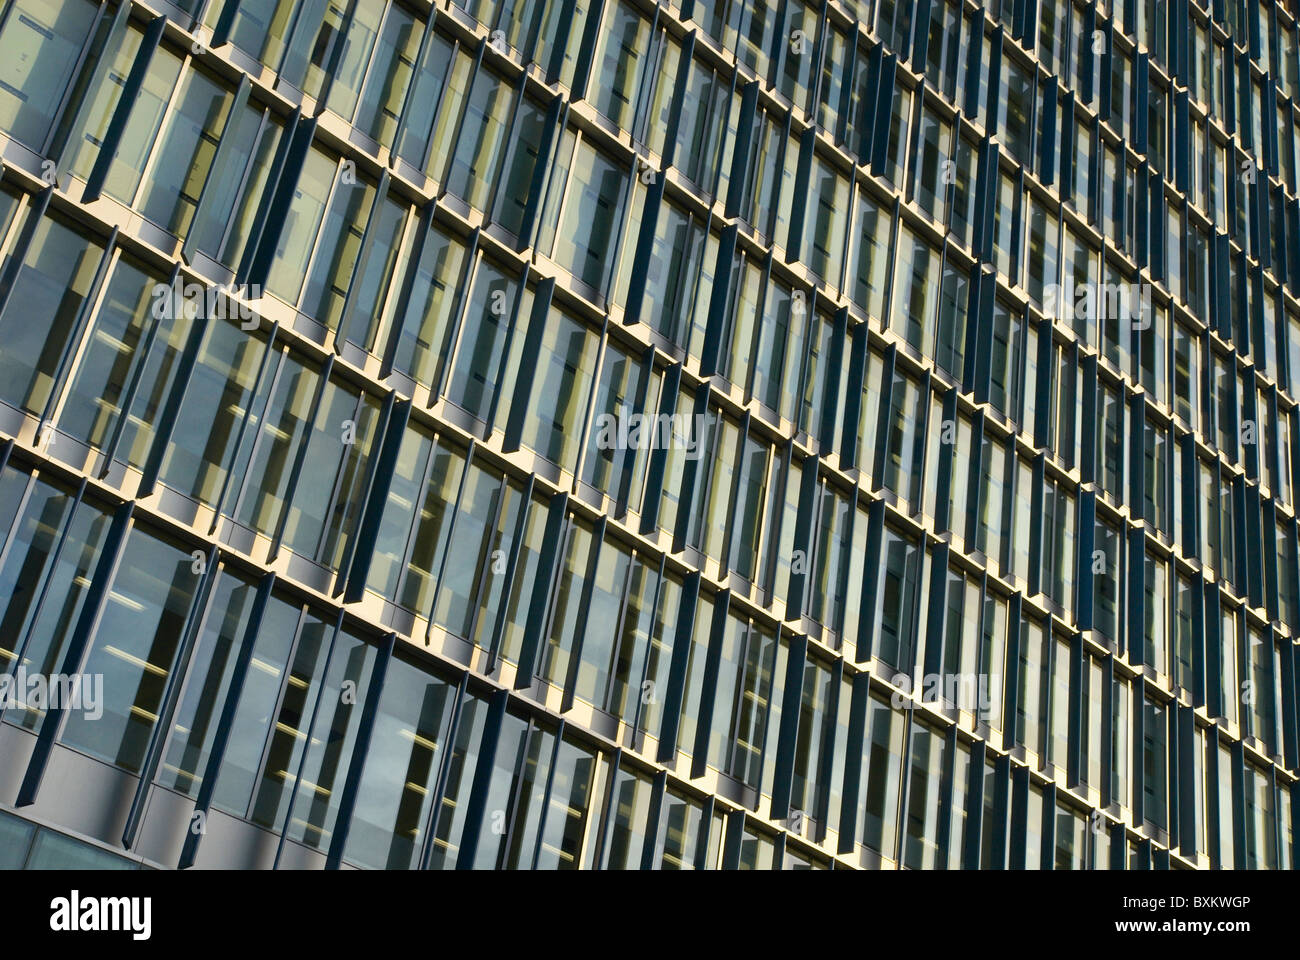 Abstrakte Muster der neuen Fassade London UK Stockbild